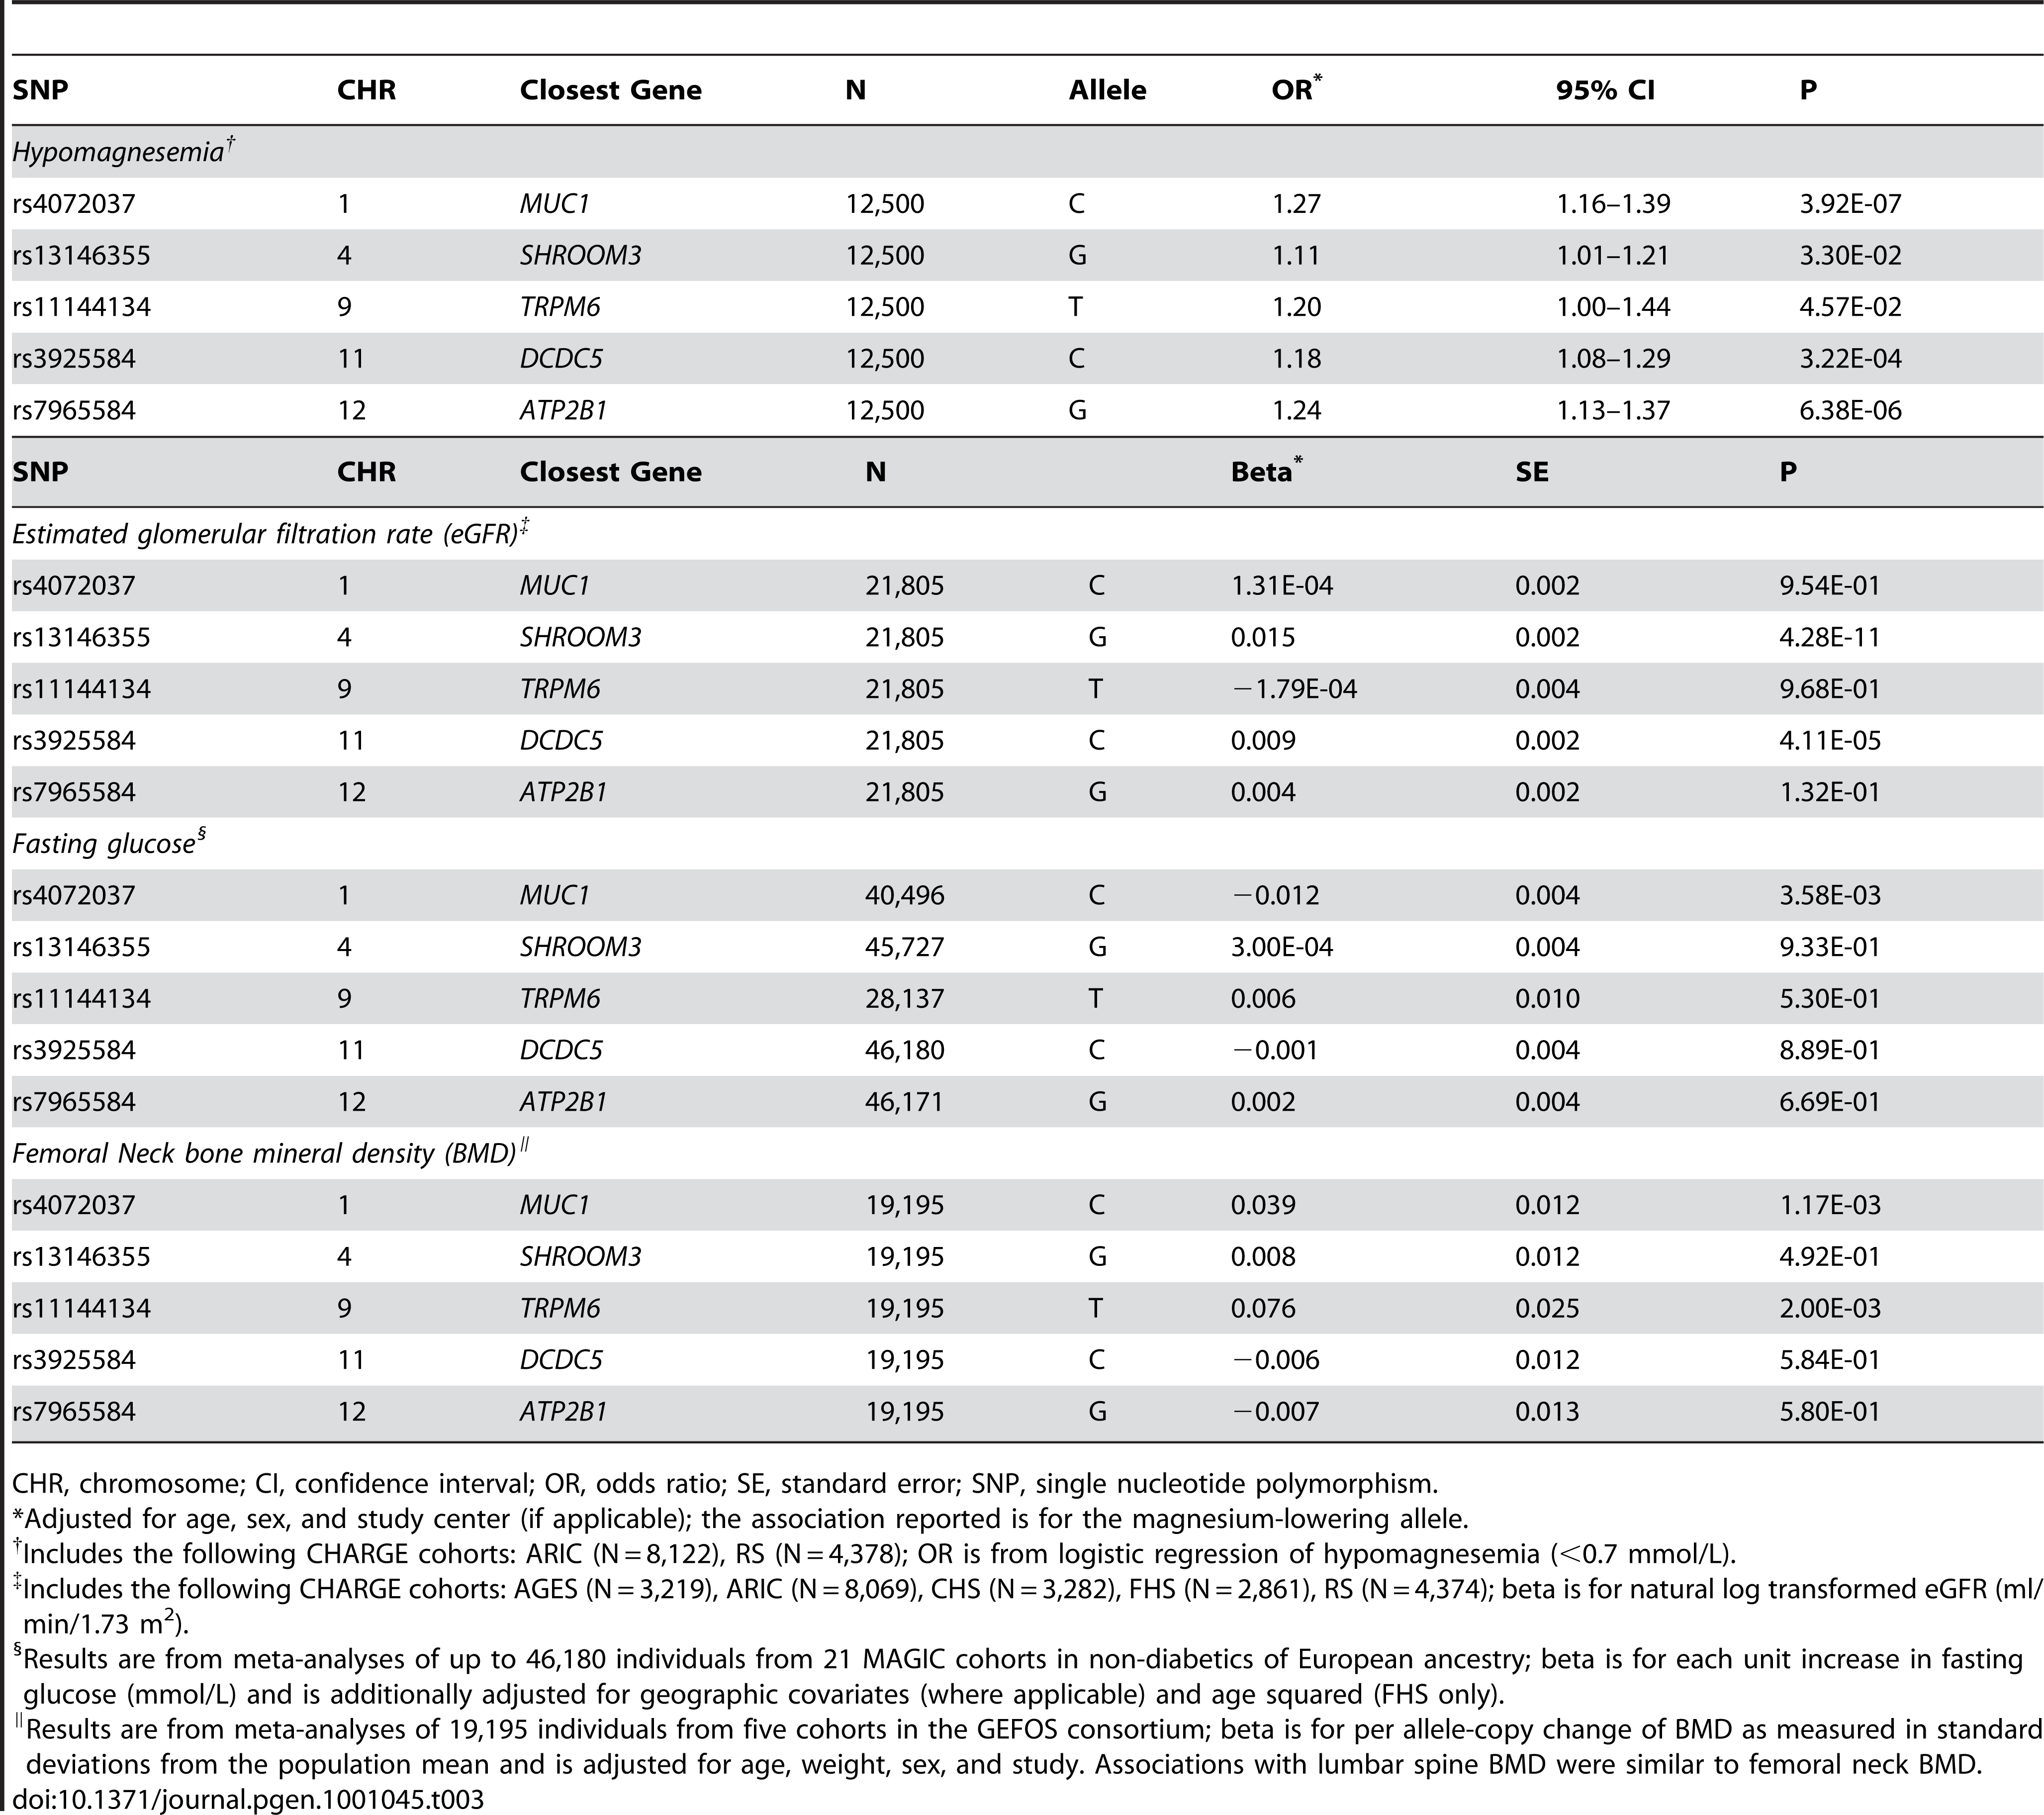 Association between hypomagnesemia, estimated glomerular filtration rate, fasting glucose, and bone mineral density with the lead replicated SNPs showing genome-wide significant associations with serum magnesium concentrations.